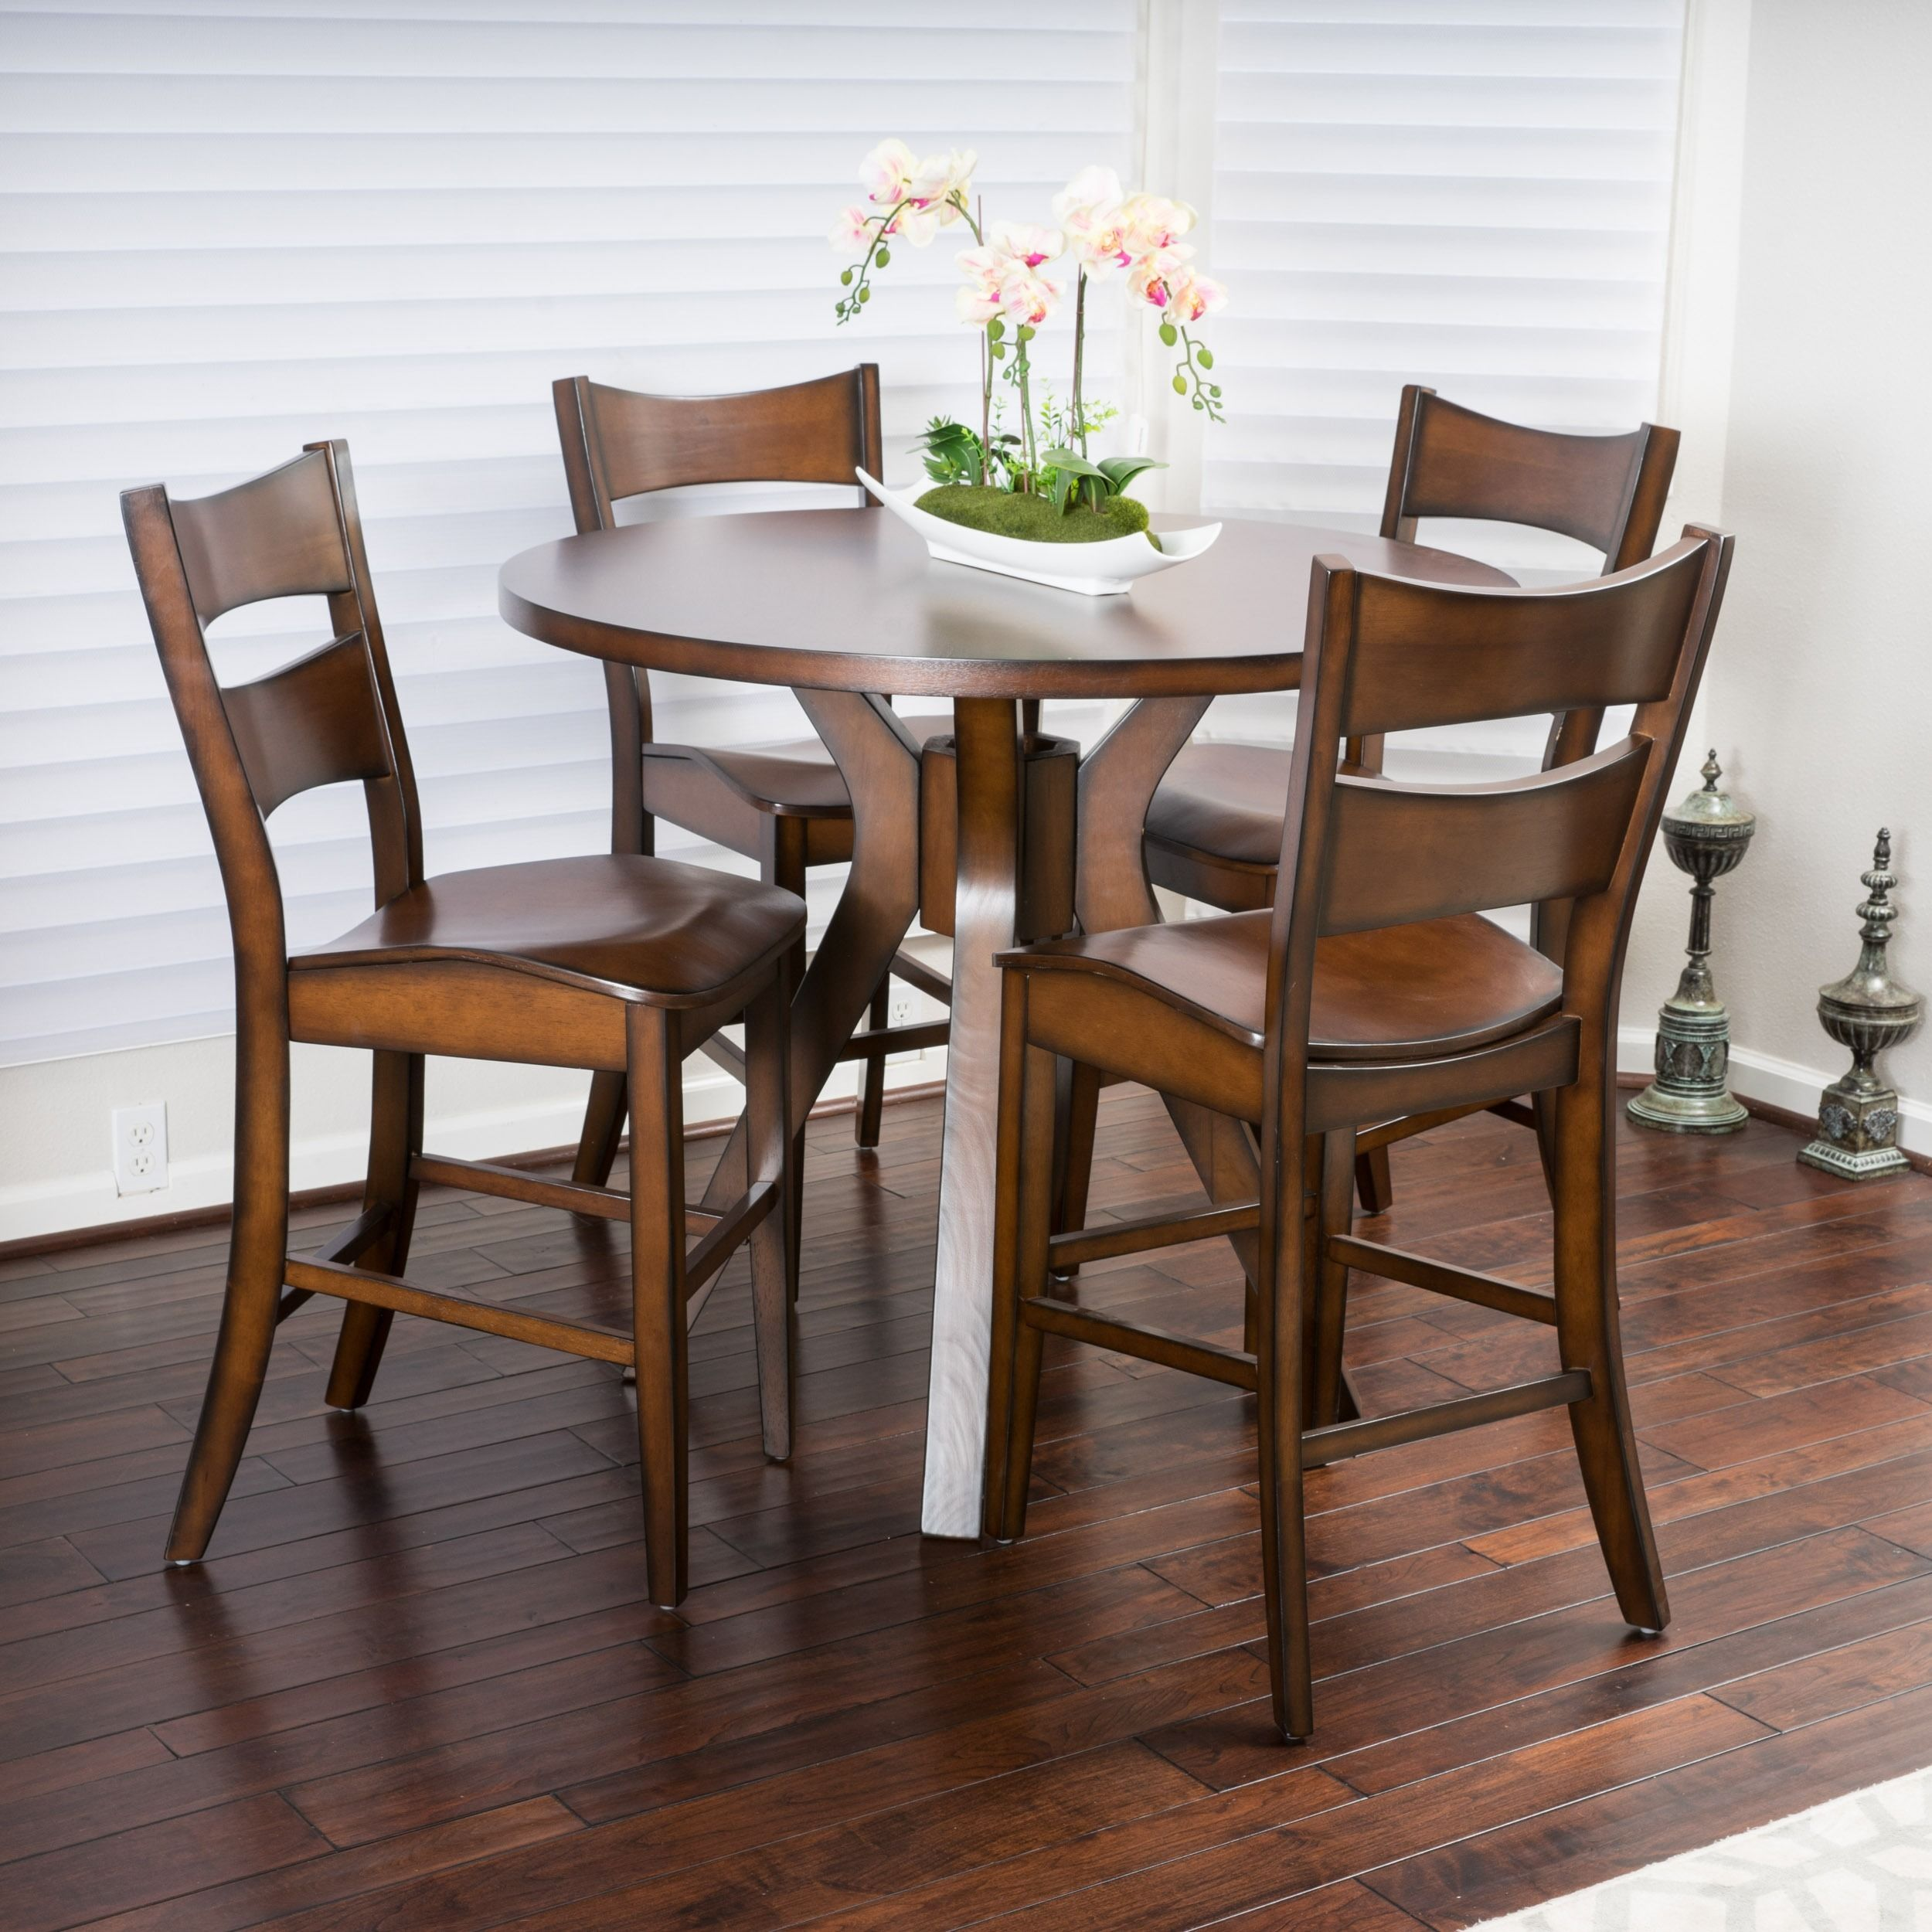 26 Dining Room Ideas Dining Home Decor Furniture